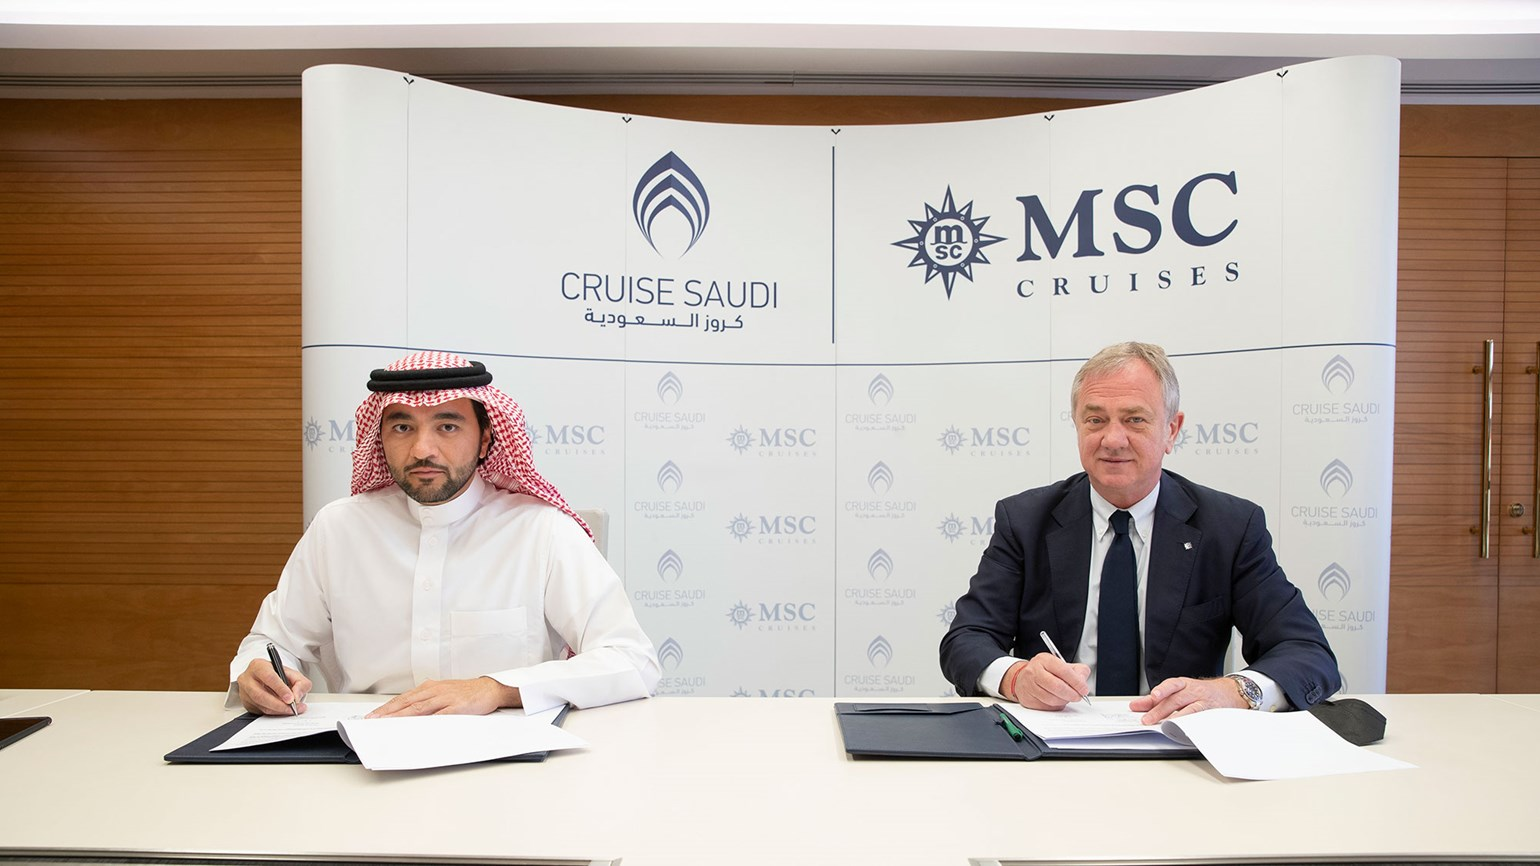 MSC Cruises will sail from Saudi Arabia this winter